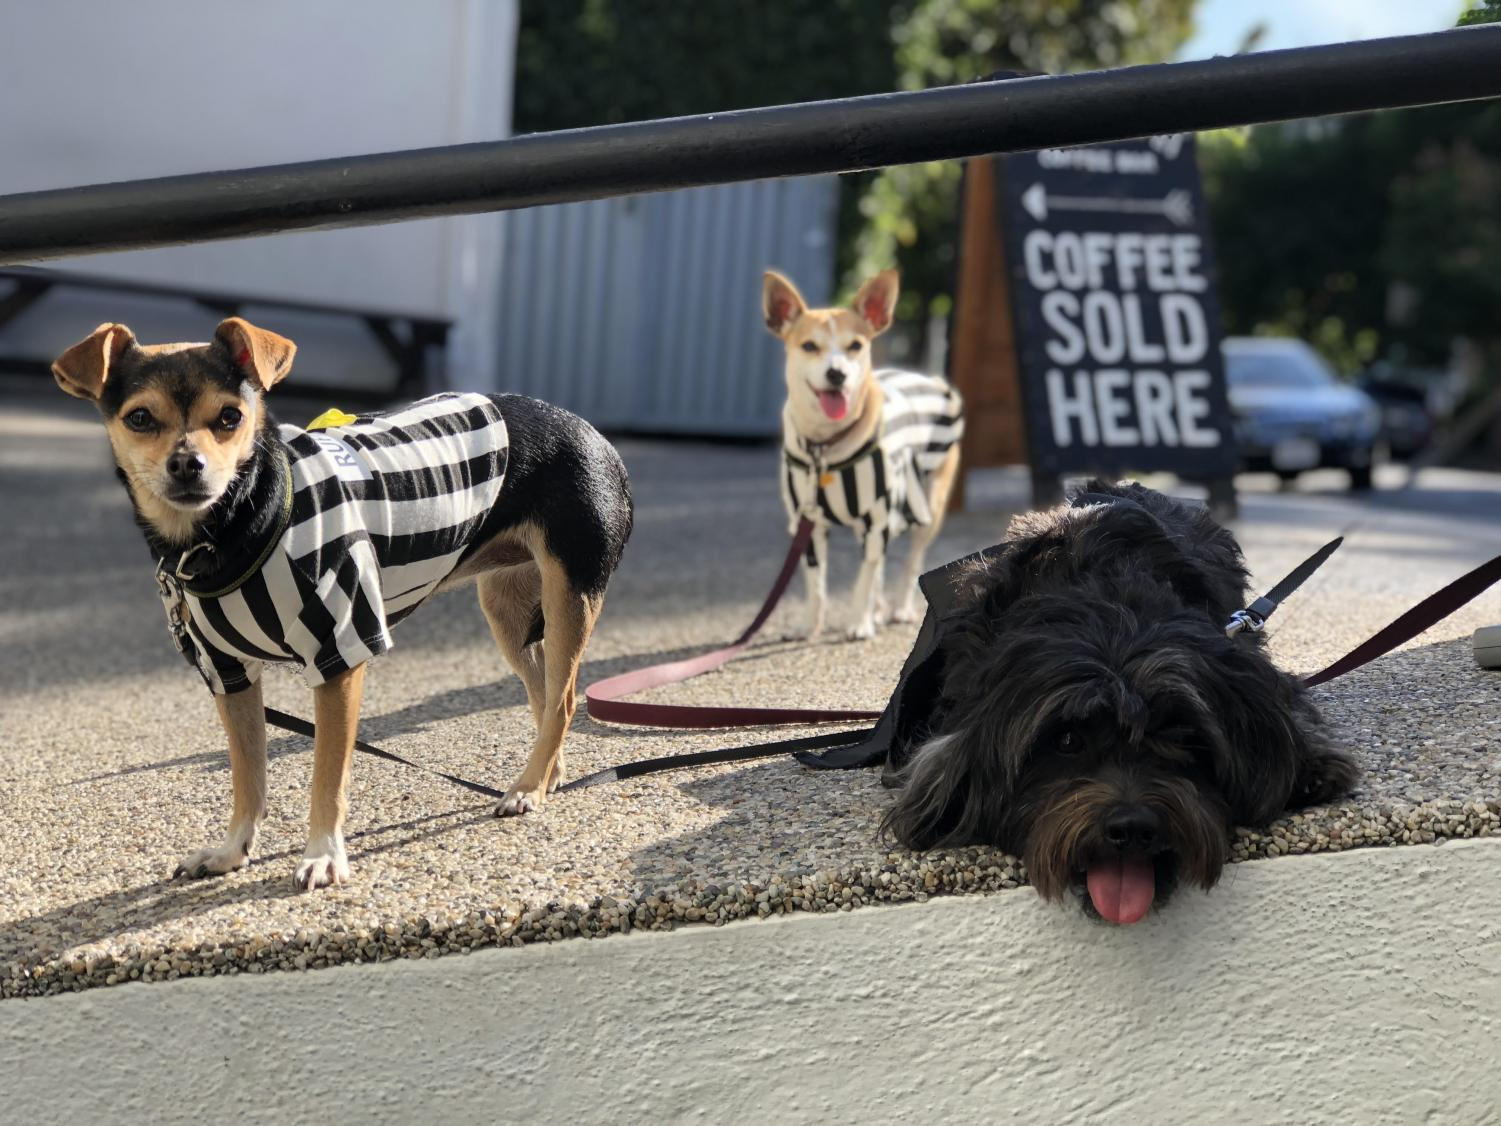 Chelsea FC, Twiggy, and Mr. Hubble pose in front of Smith and Tait Coffee Shop. This year for Halloween, owner Kim Smith dressed them as rufferees.